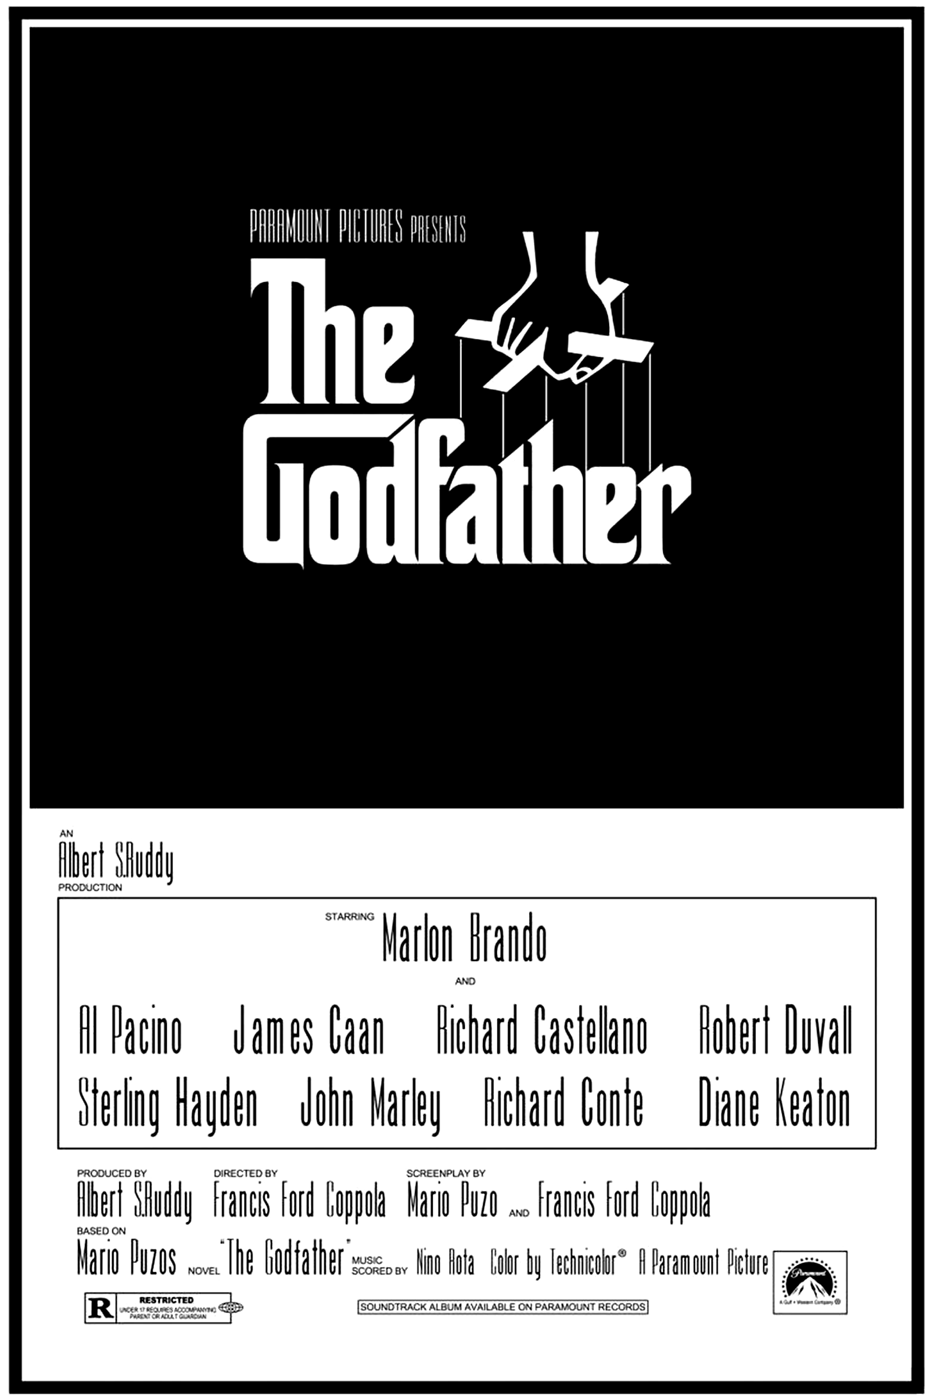 Película - The Godfather - Francis Ford Coppola (1972)